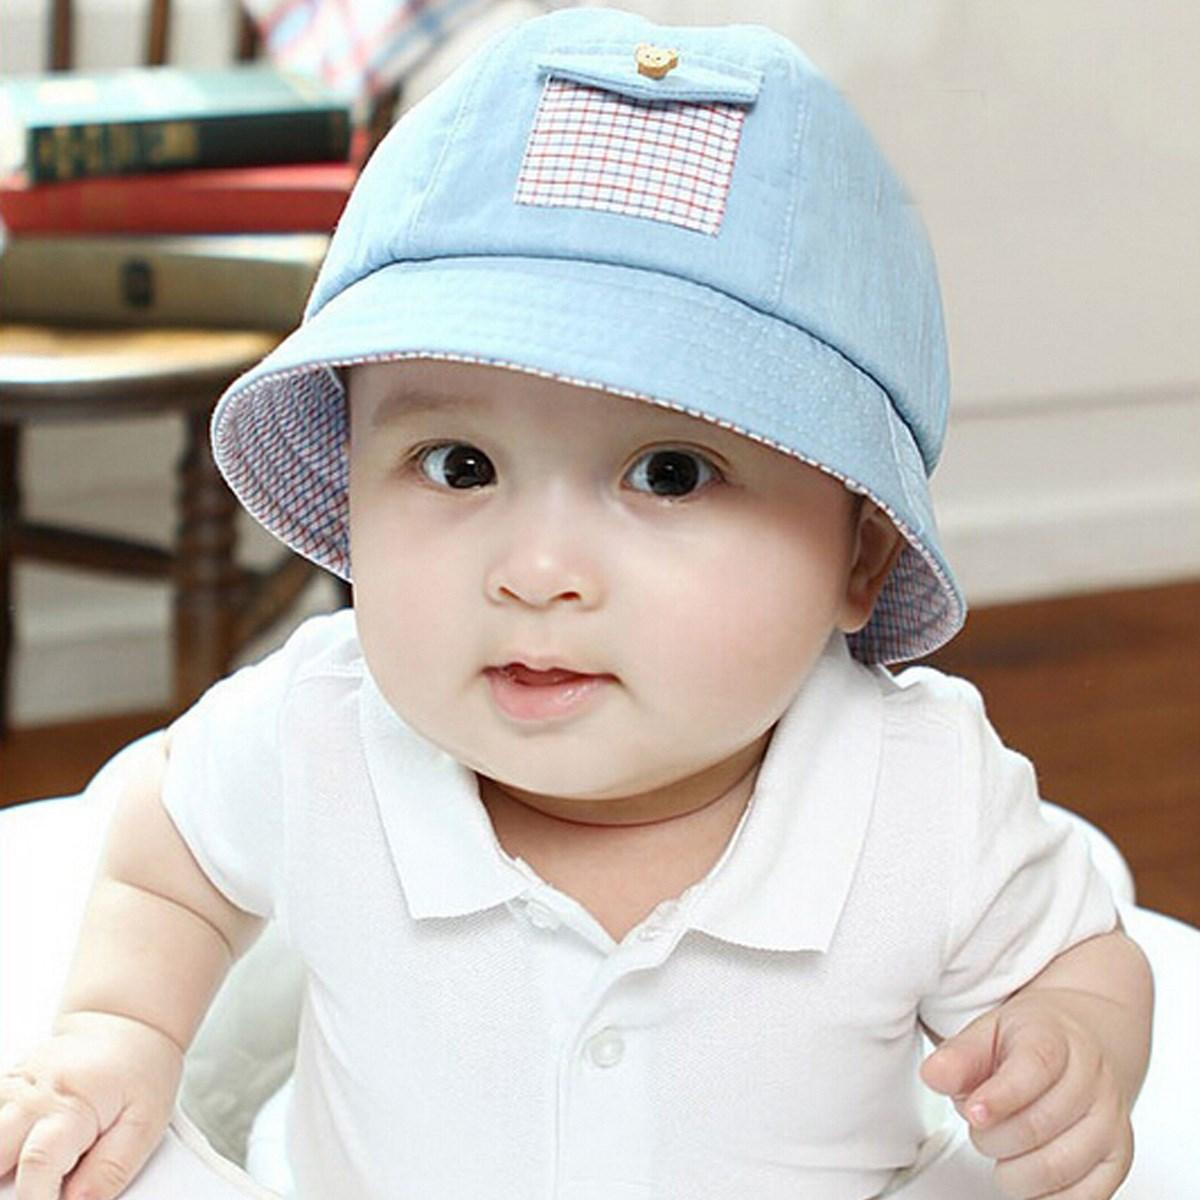 Top off an incredible outfit with baby sun hats from Old Navy. These cool hats for baby boys and girls are instantly photo worthy. Be the hip aunt, uncle or family friend who adds a touch of style to that special kid's wardrobe with a selection from Old Navy.